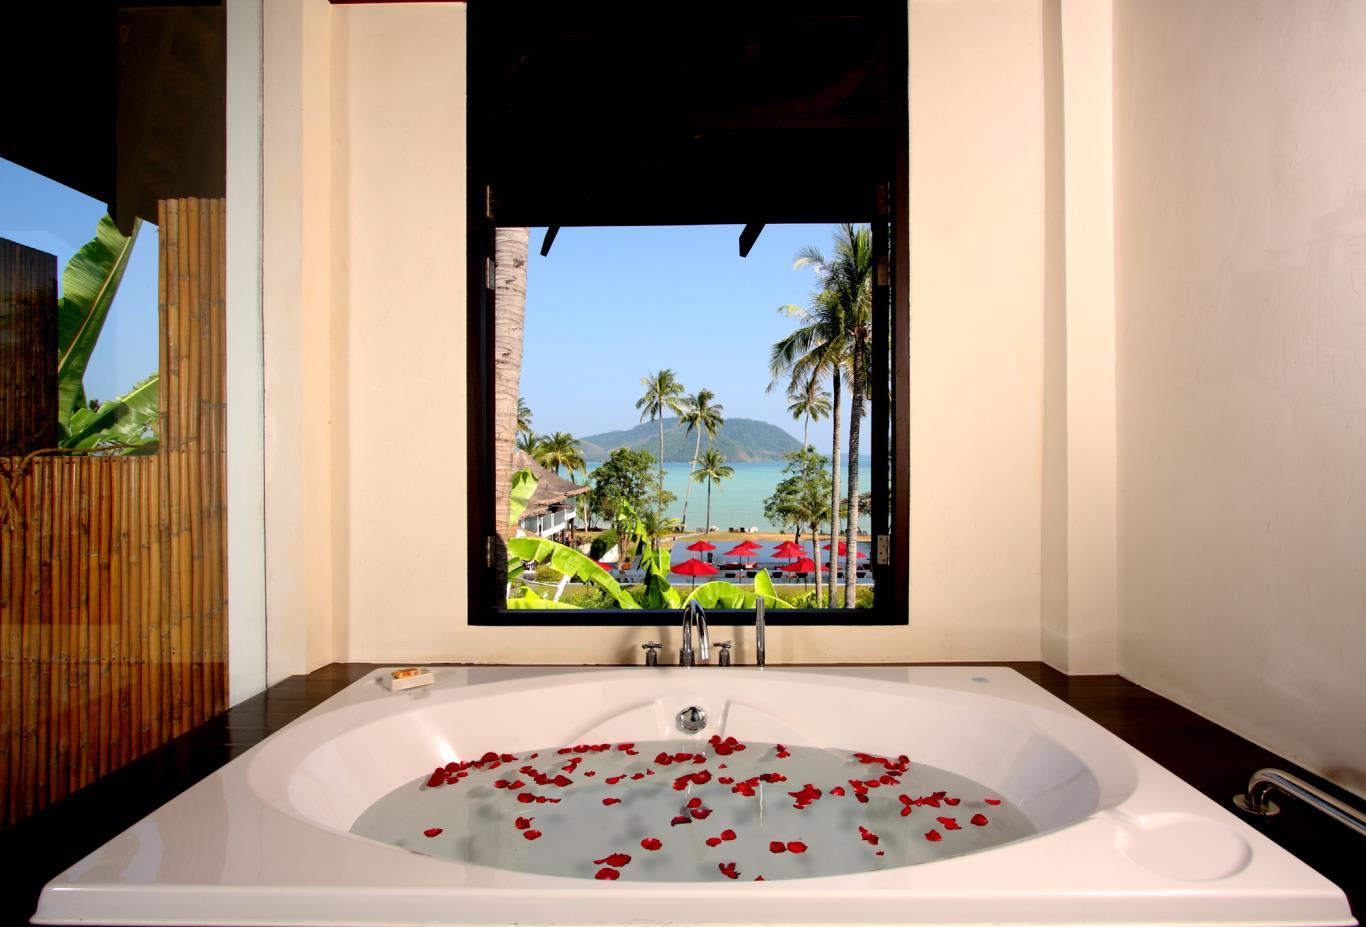 Deluxe-Seaview-Villa-Bathtub